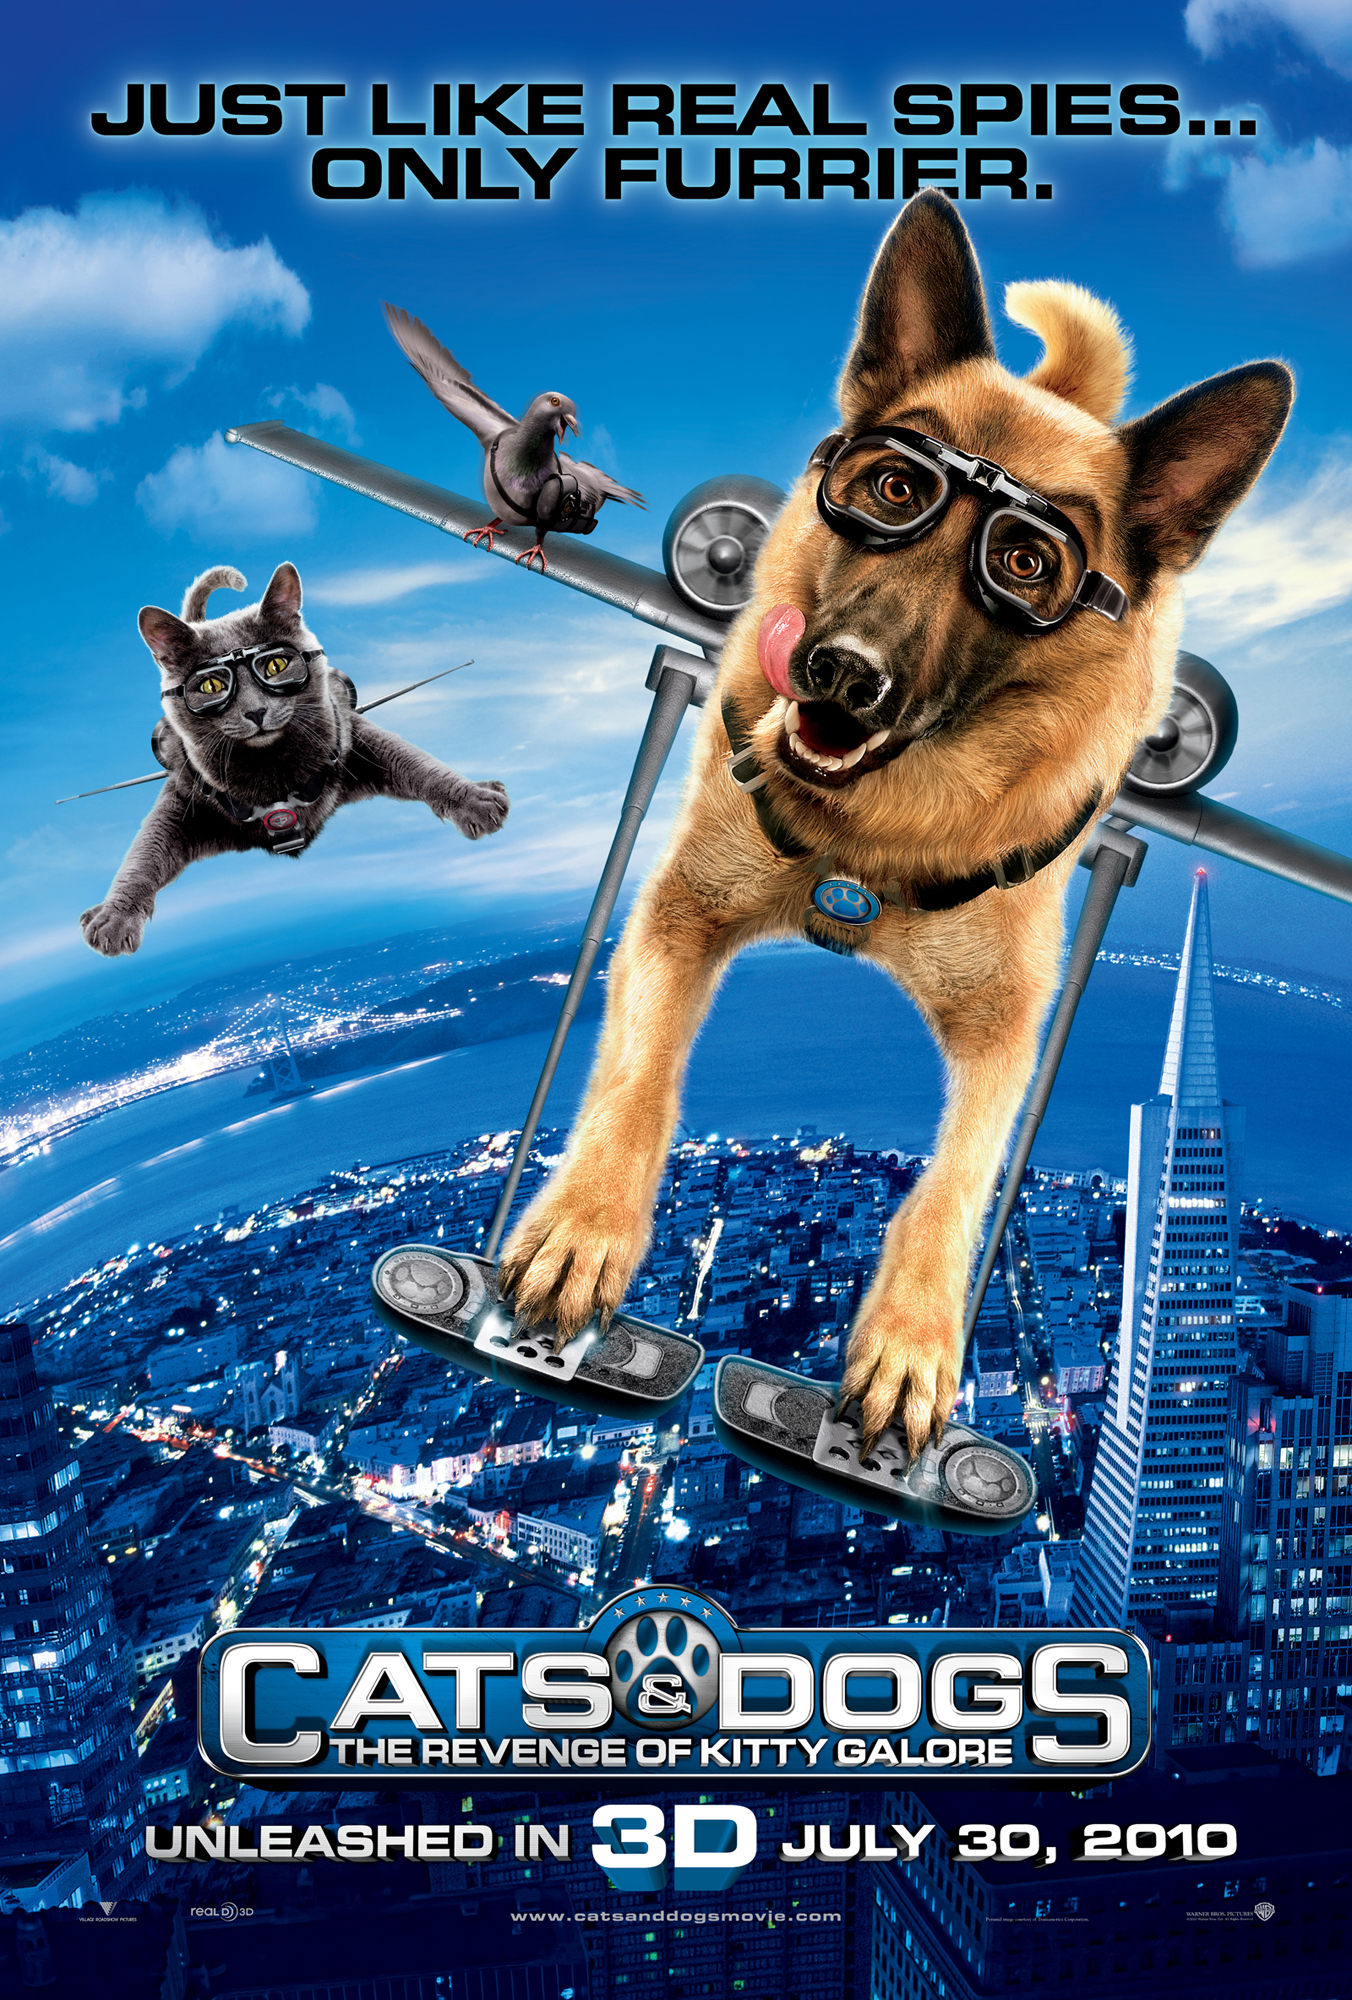 Cats & Dogs: The Revenge of Kitty Galore (2010) - IMDb